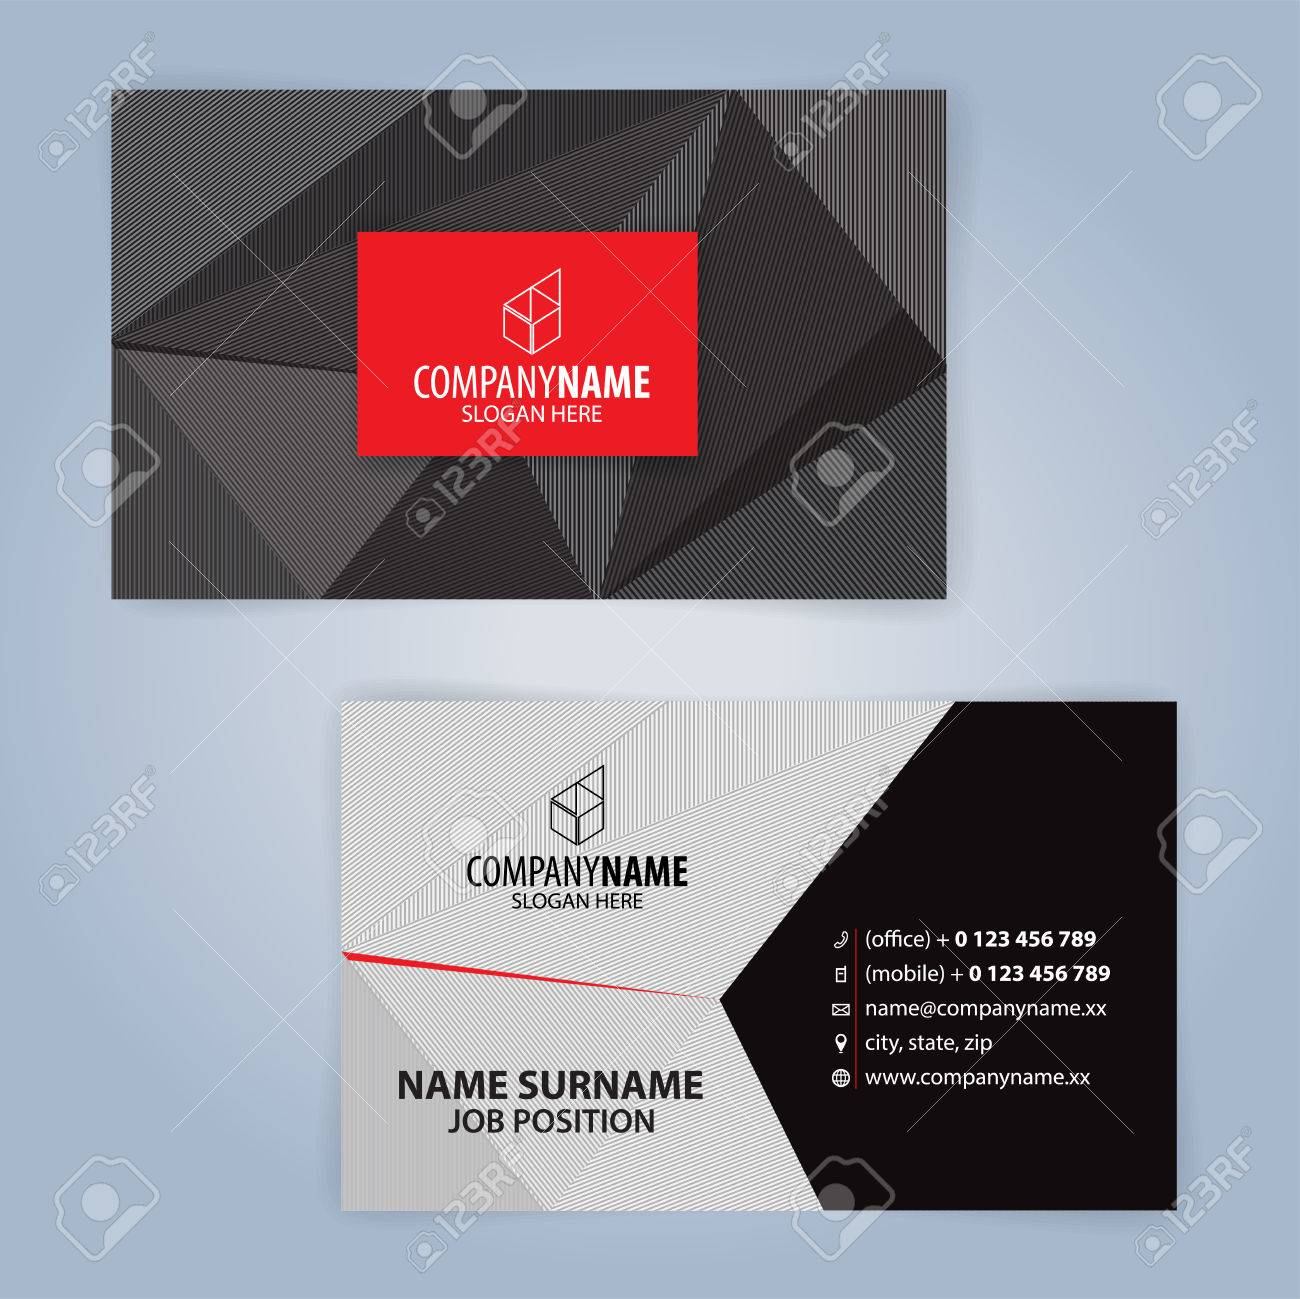 Business Card Template Red And Black Illustration Vector Royalty - Mobile business card template